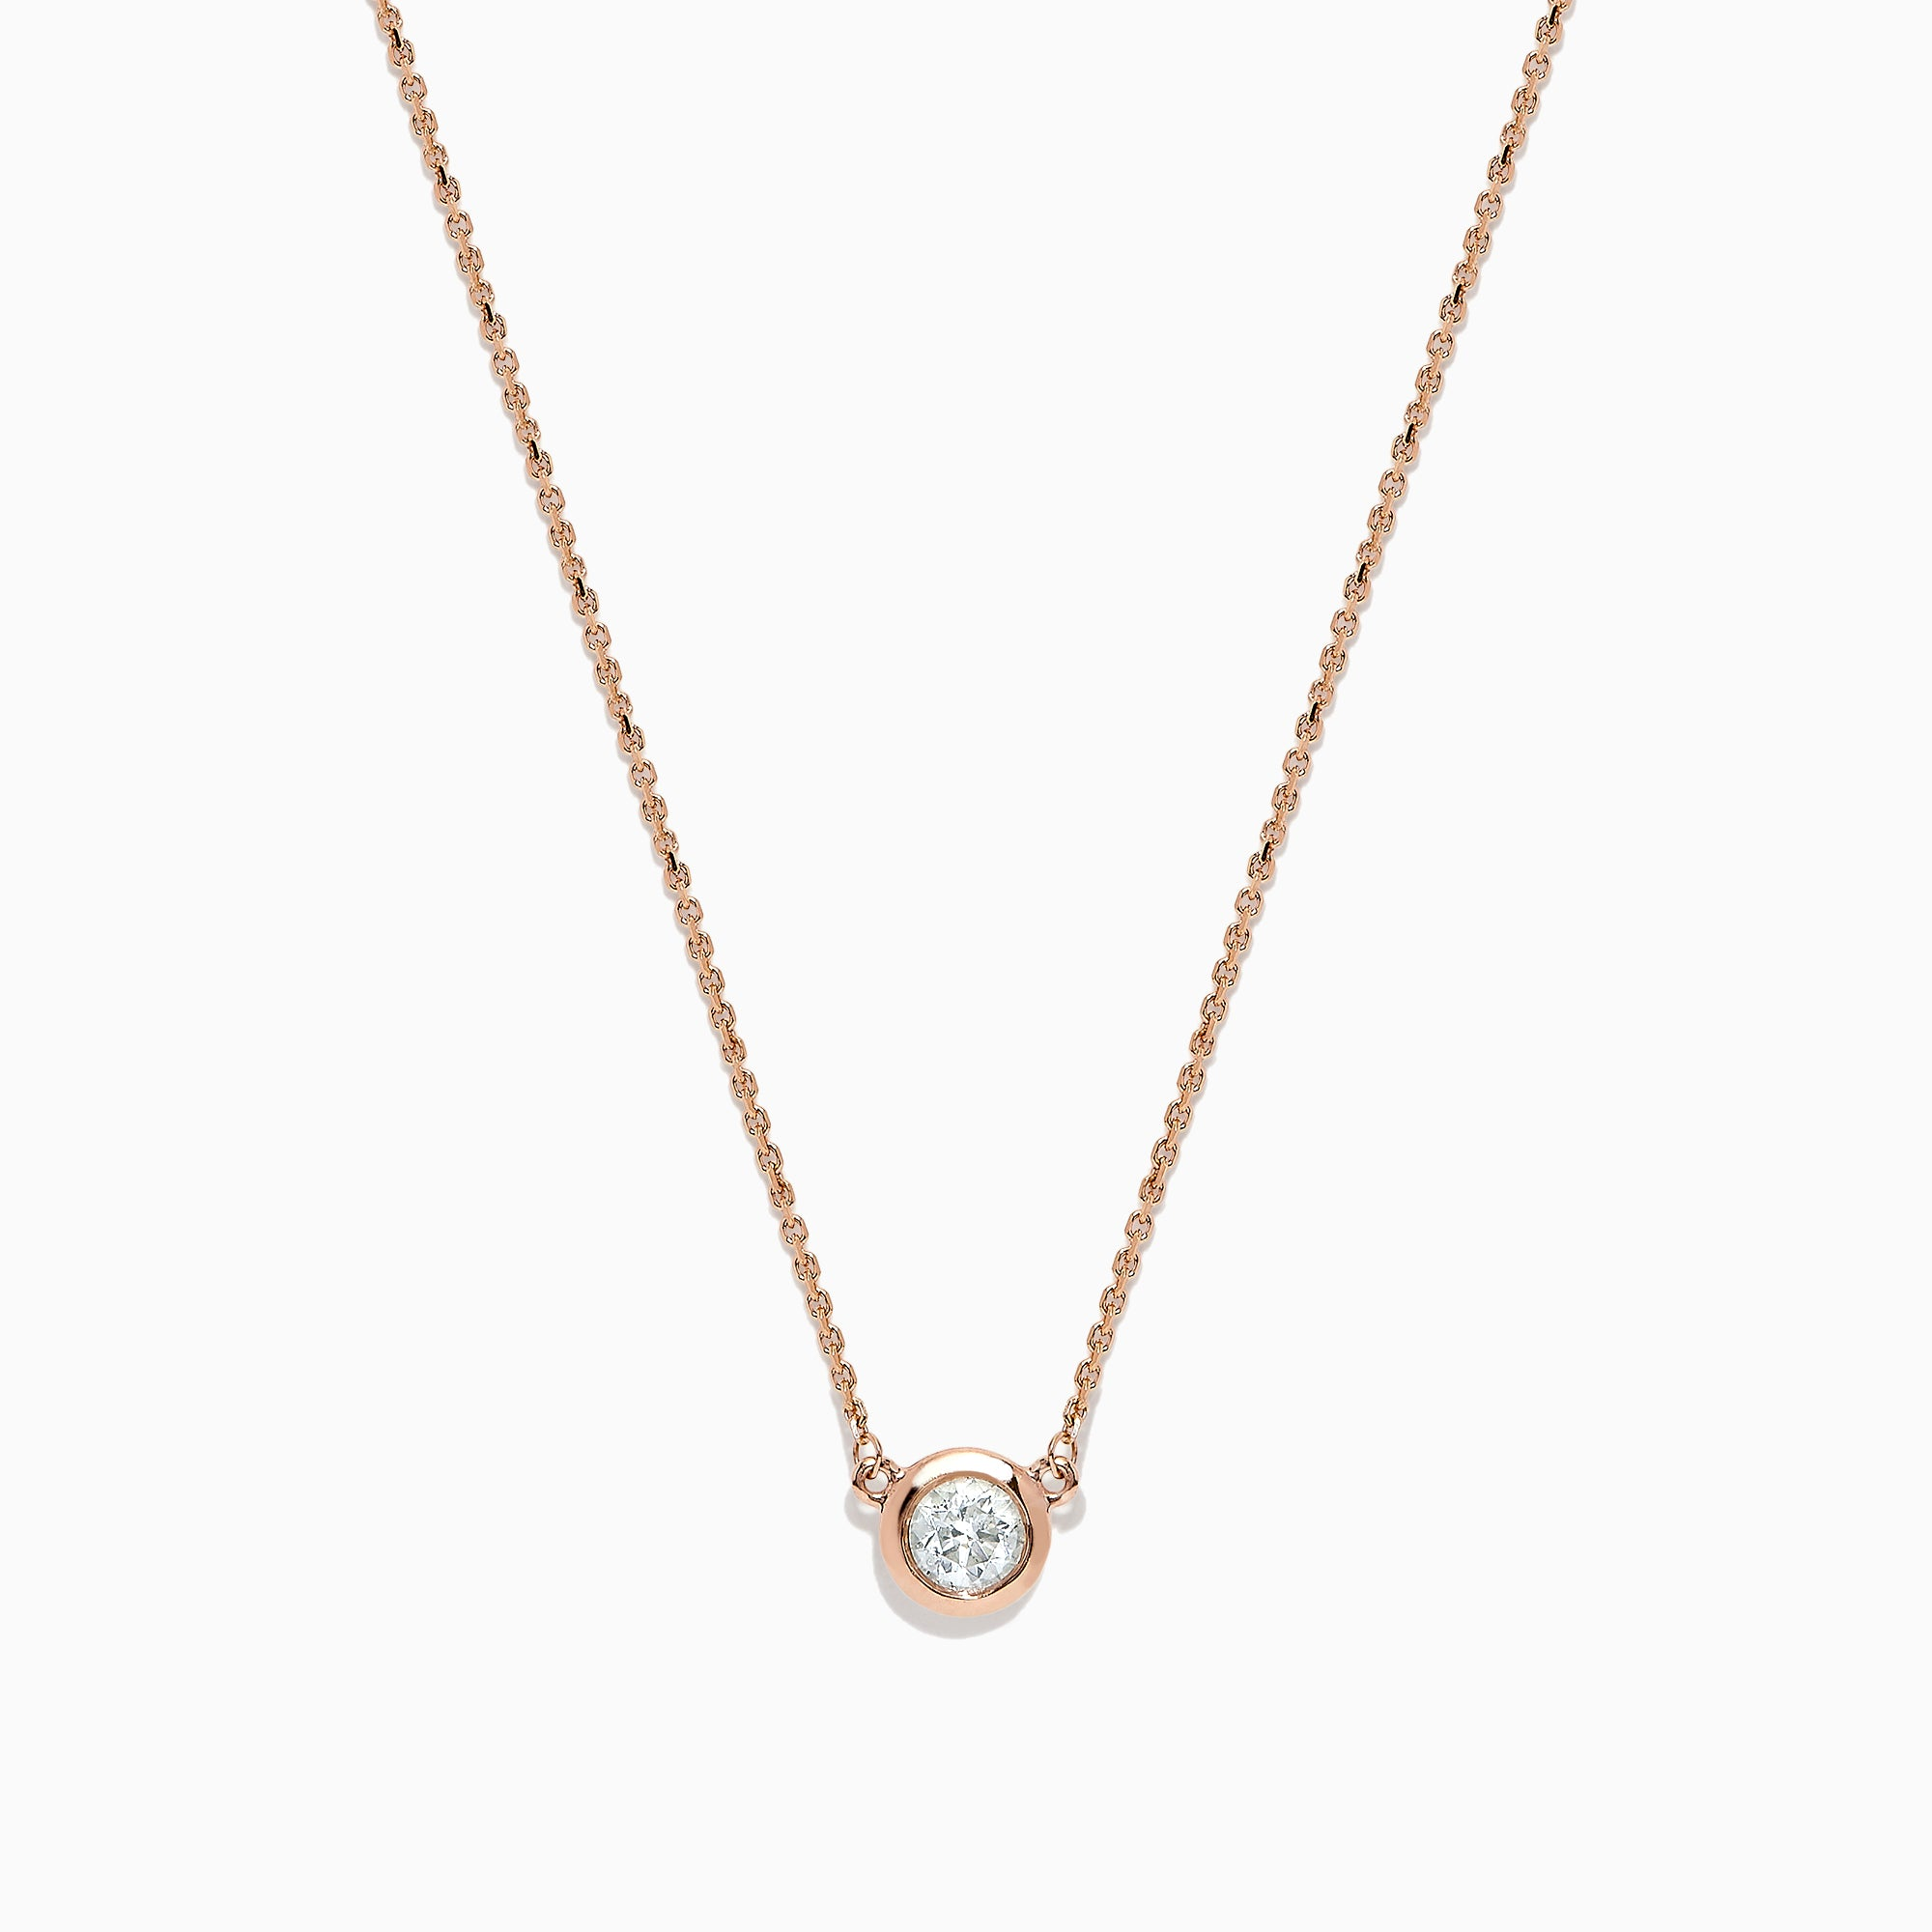 Effy 14K Rose Gold Bezel Set Diamond Necklace, 0.39 TCW